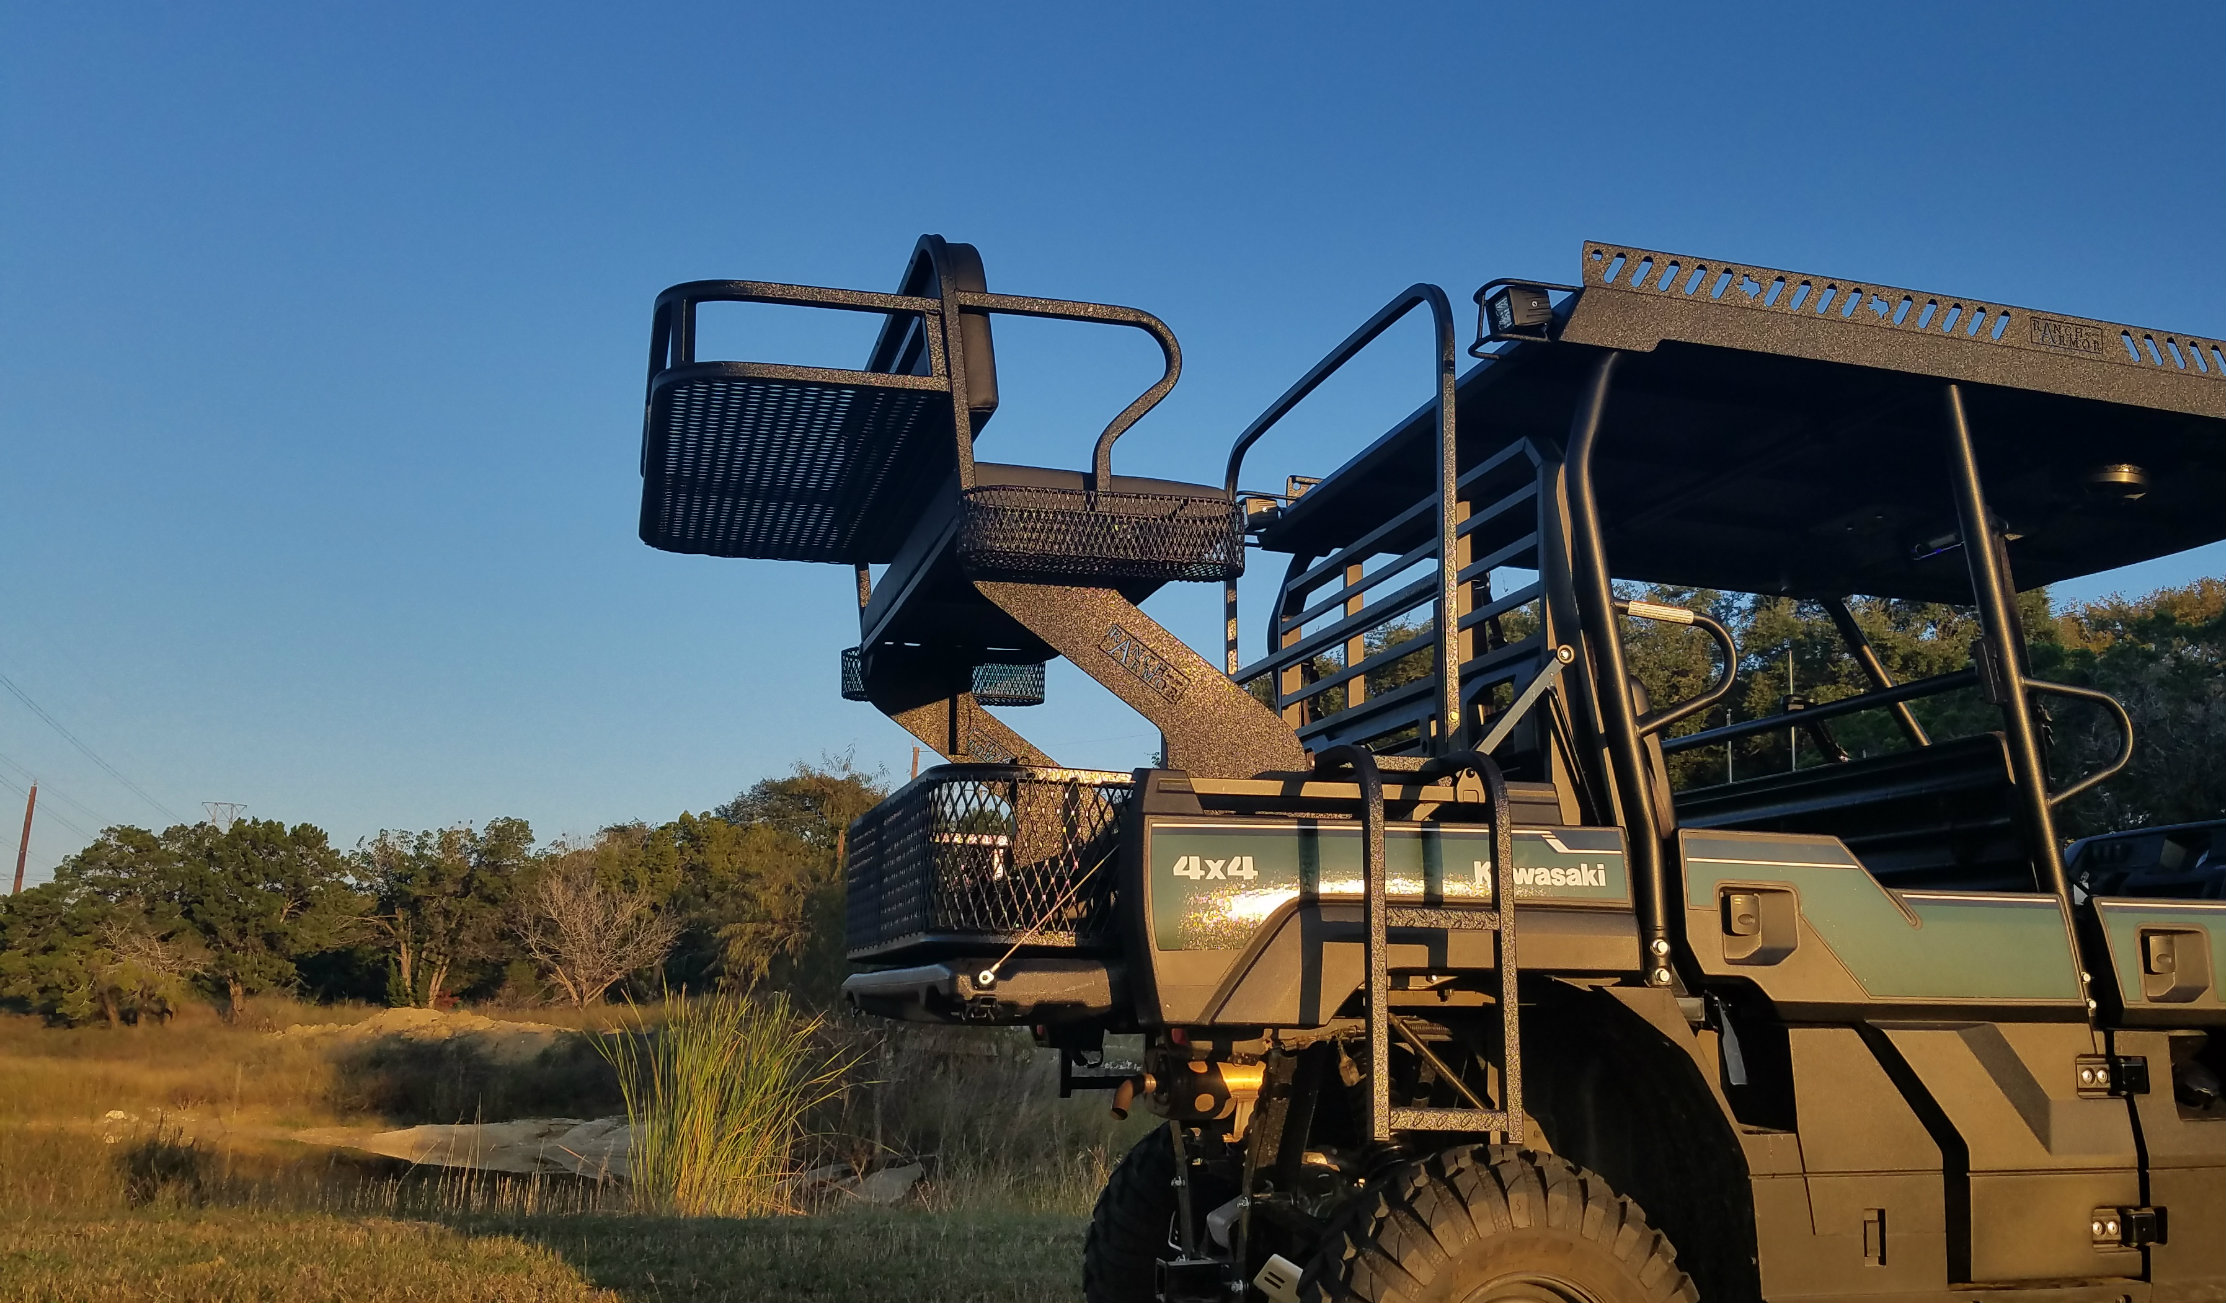 kawasaki-mule-pro-fxt-high-seat-and-roof-by-ranch-armor-utv.jpg